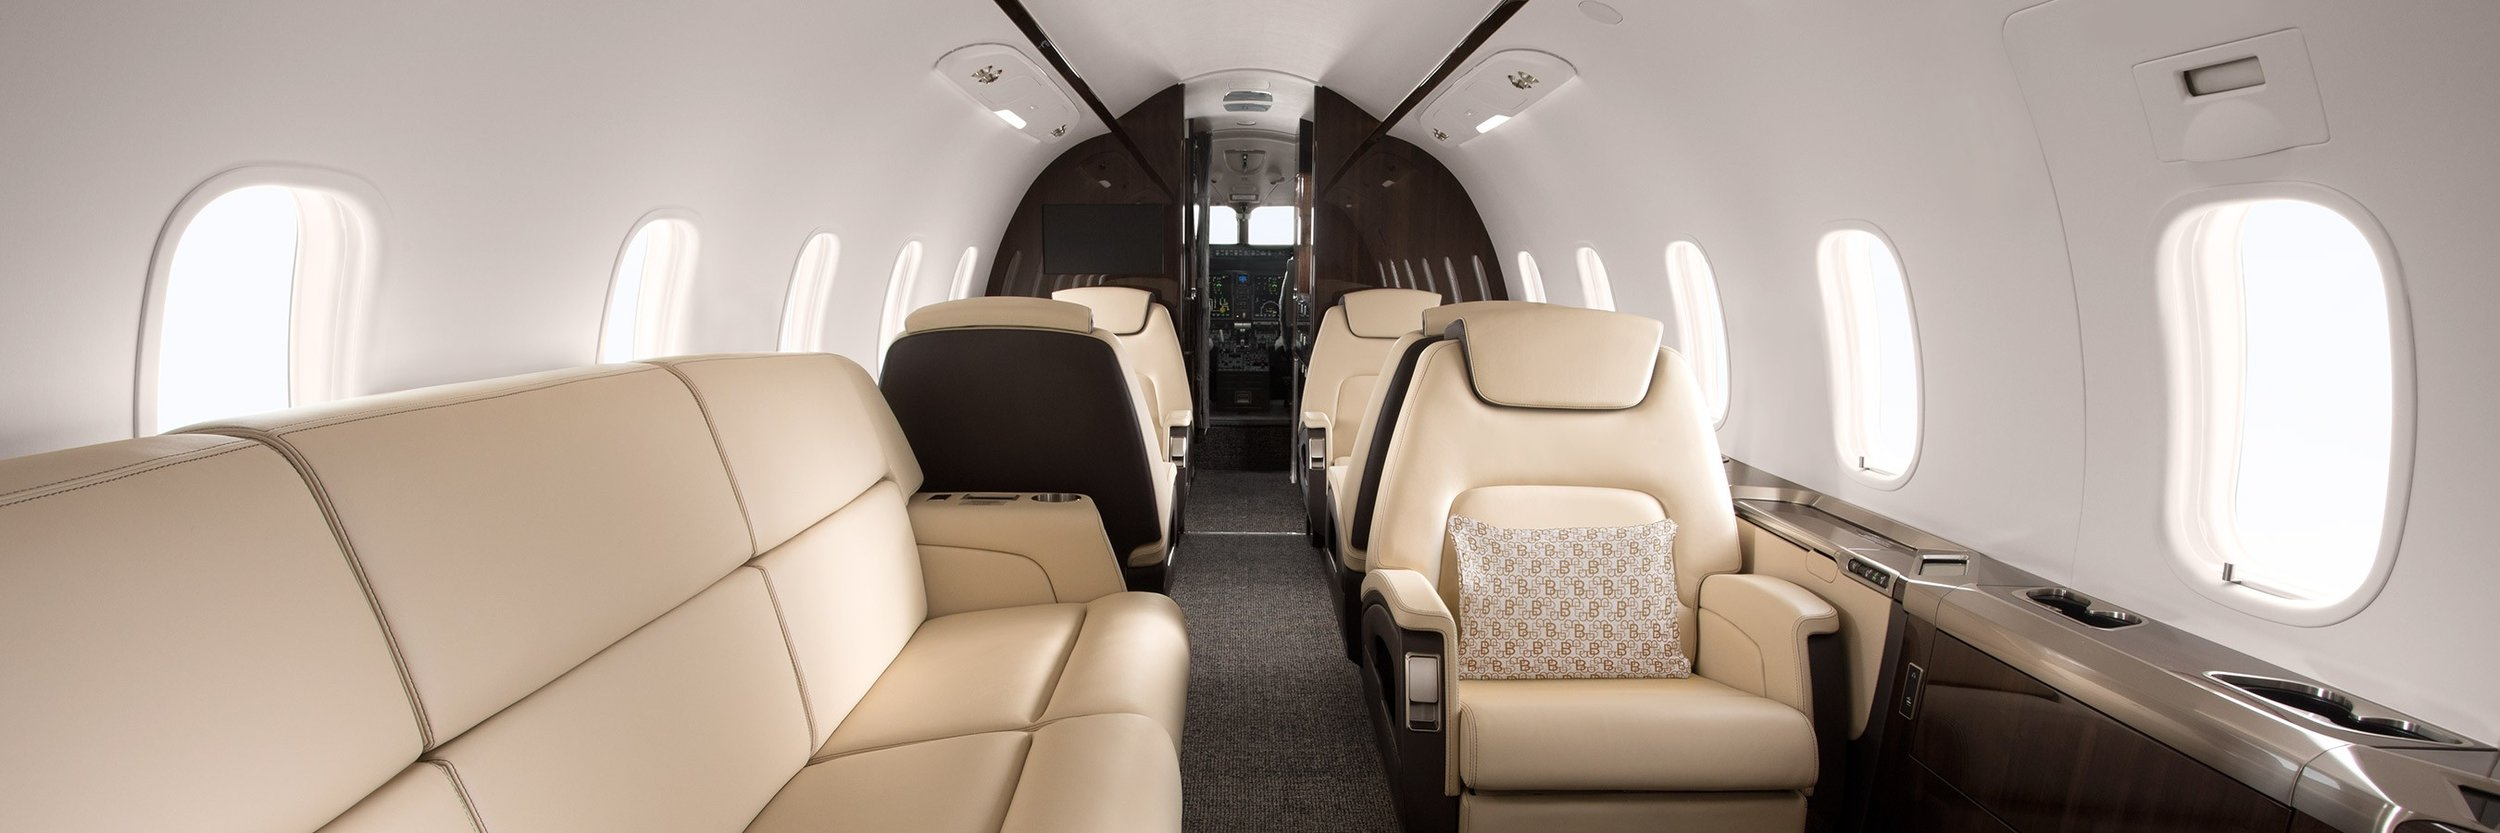 Astute Aviation | Private Jet Charter | Christmas and New Year | Private Jet Hire | Jet Sharper